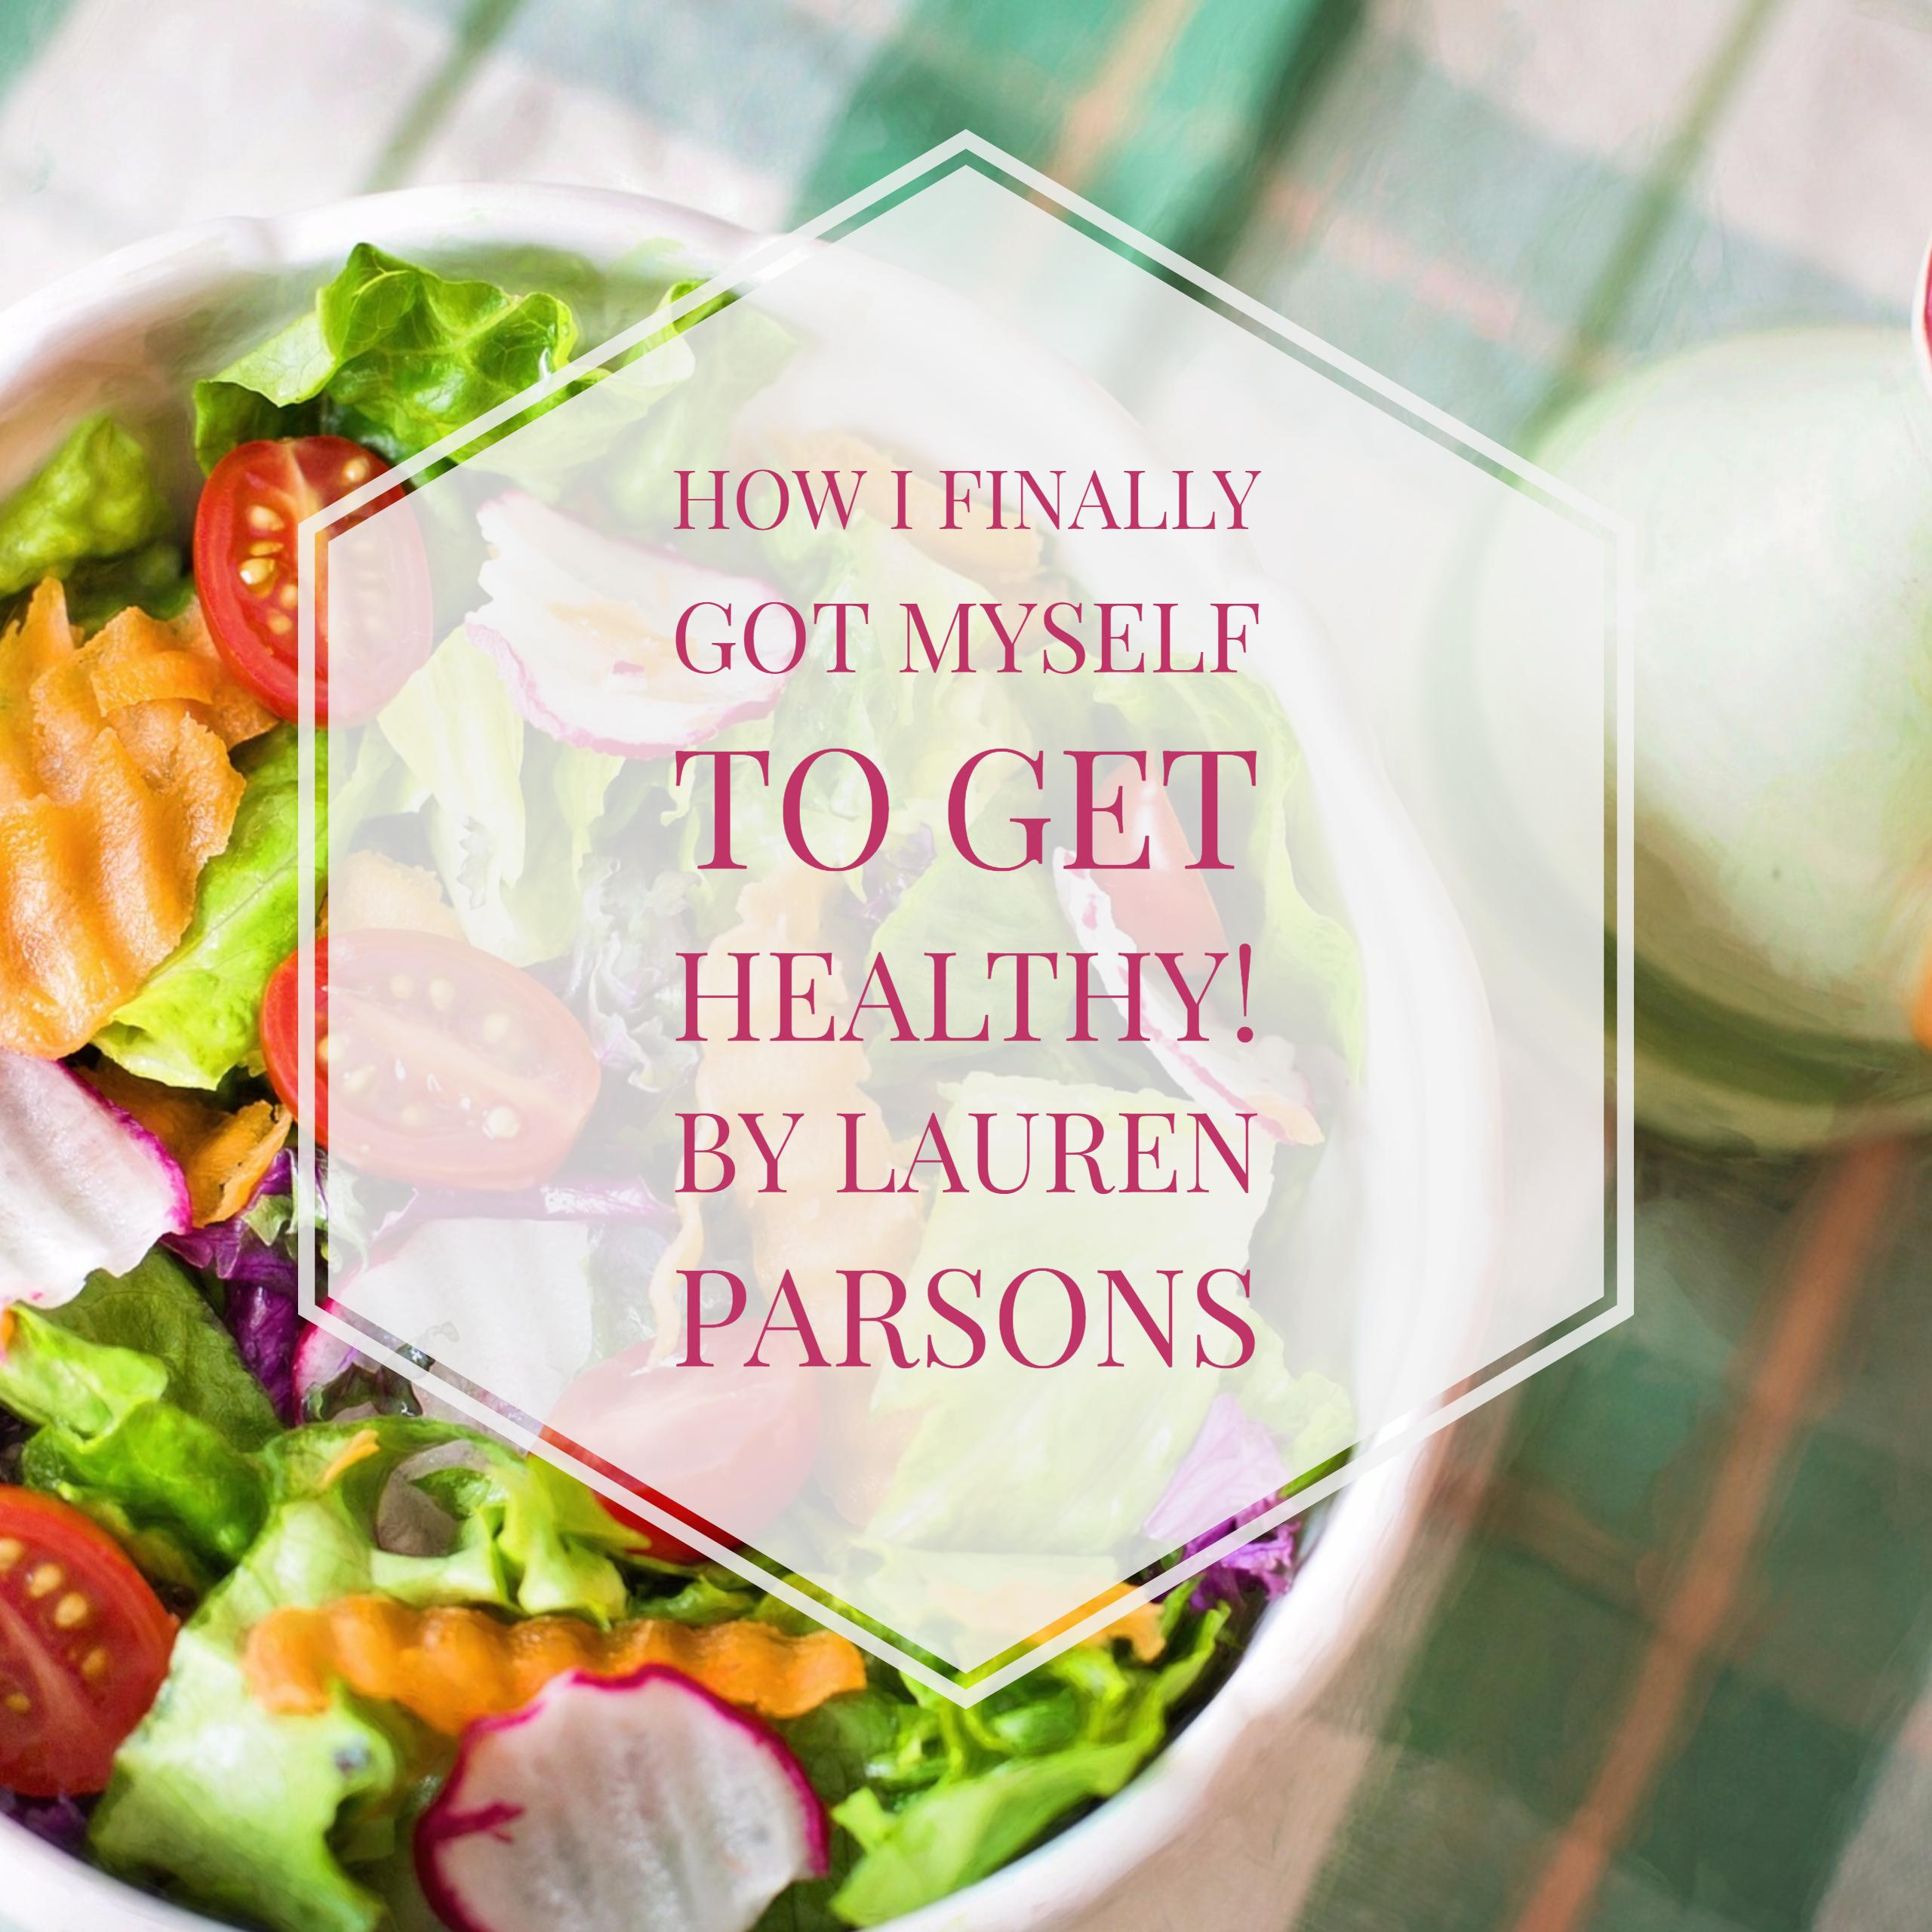 How I Finally Got Myself to Get Healthy by Lauren Parsons